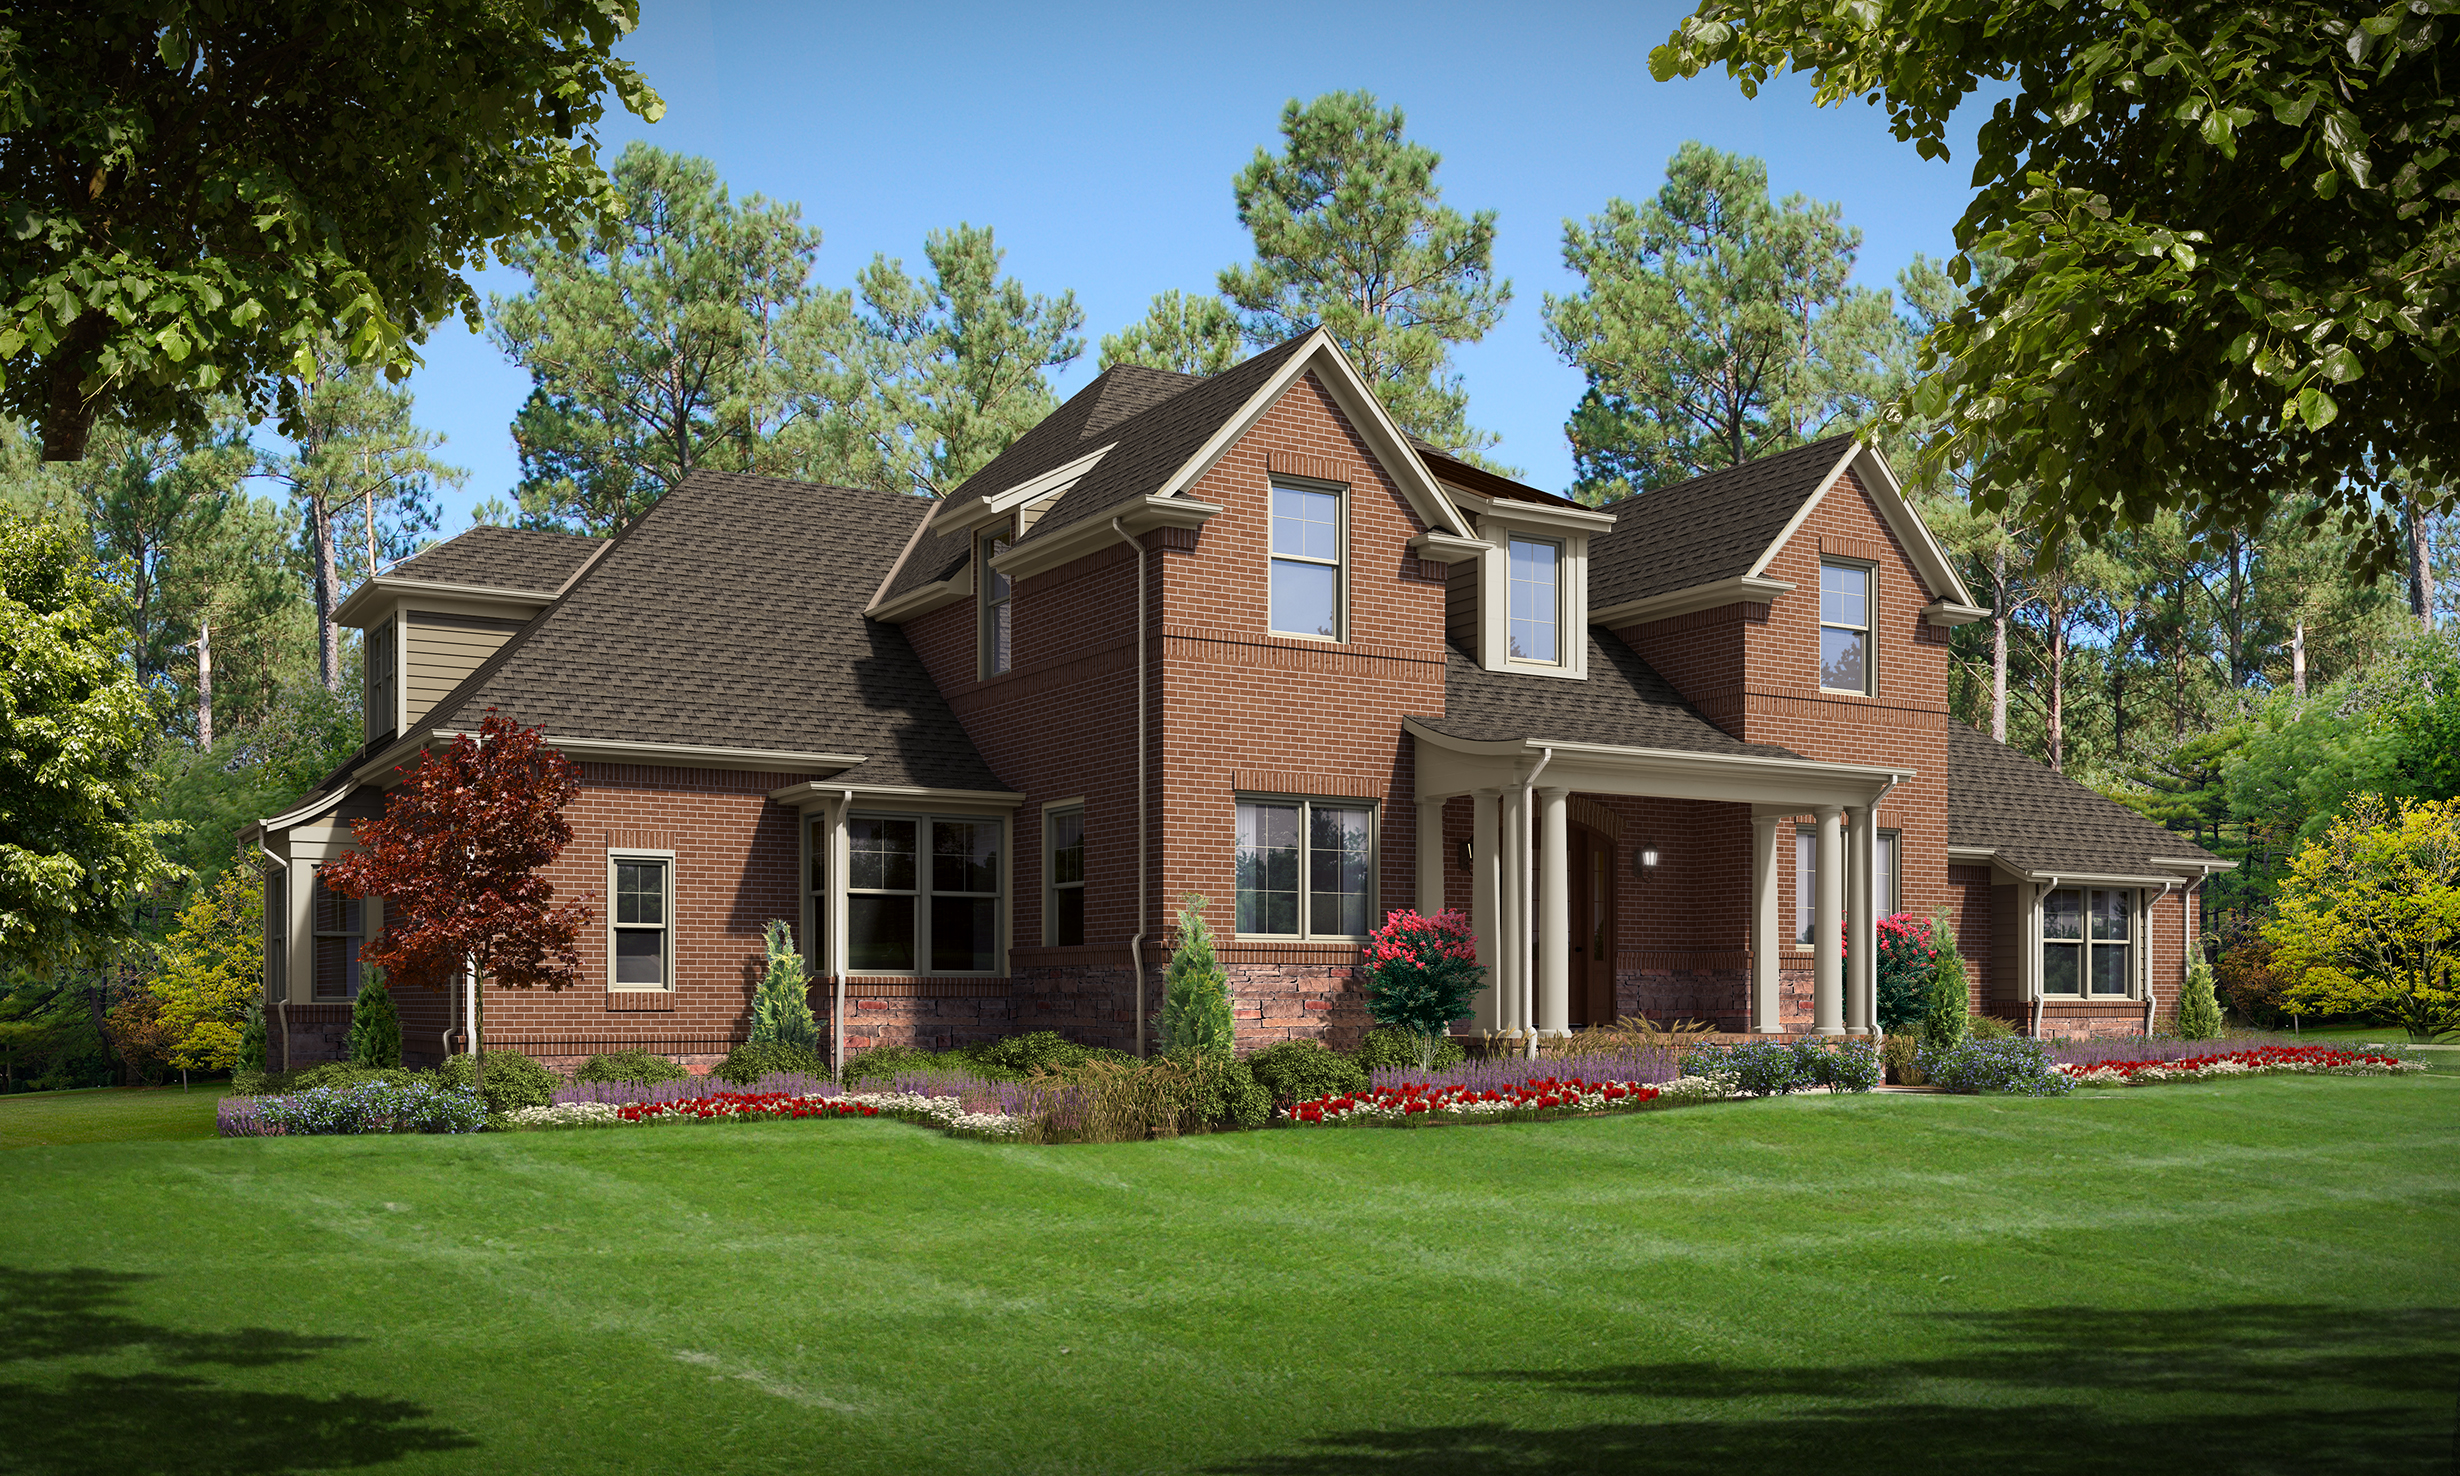 "Option C (Brick)  Total SF 7261 sq. ft. Total SF Heated 5159 sq. ft Bedrooms 5 Bathrooms 4 Width: 87'-6"" Depth: 76'-9"" Attached three-car garage Bonus room Home theater Porches: Covered front porch, Lower covered back porch, Upstairs covered porch"